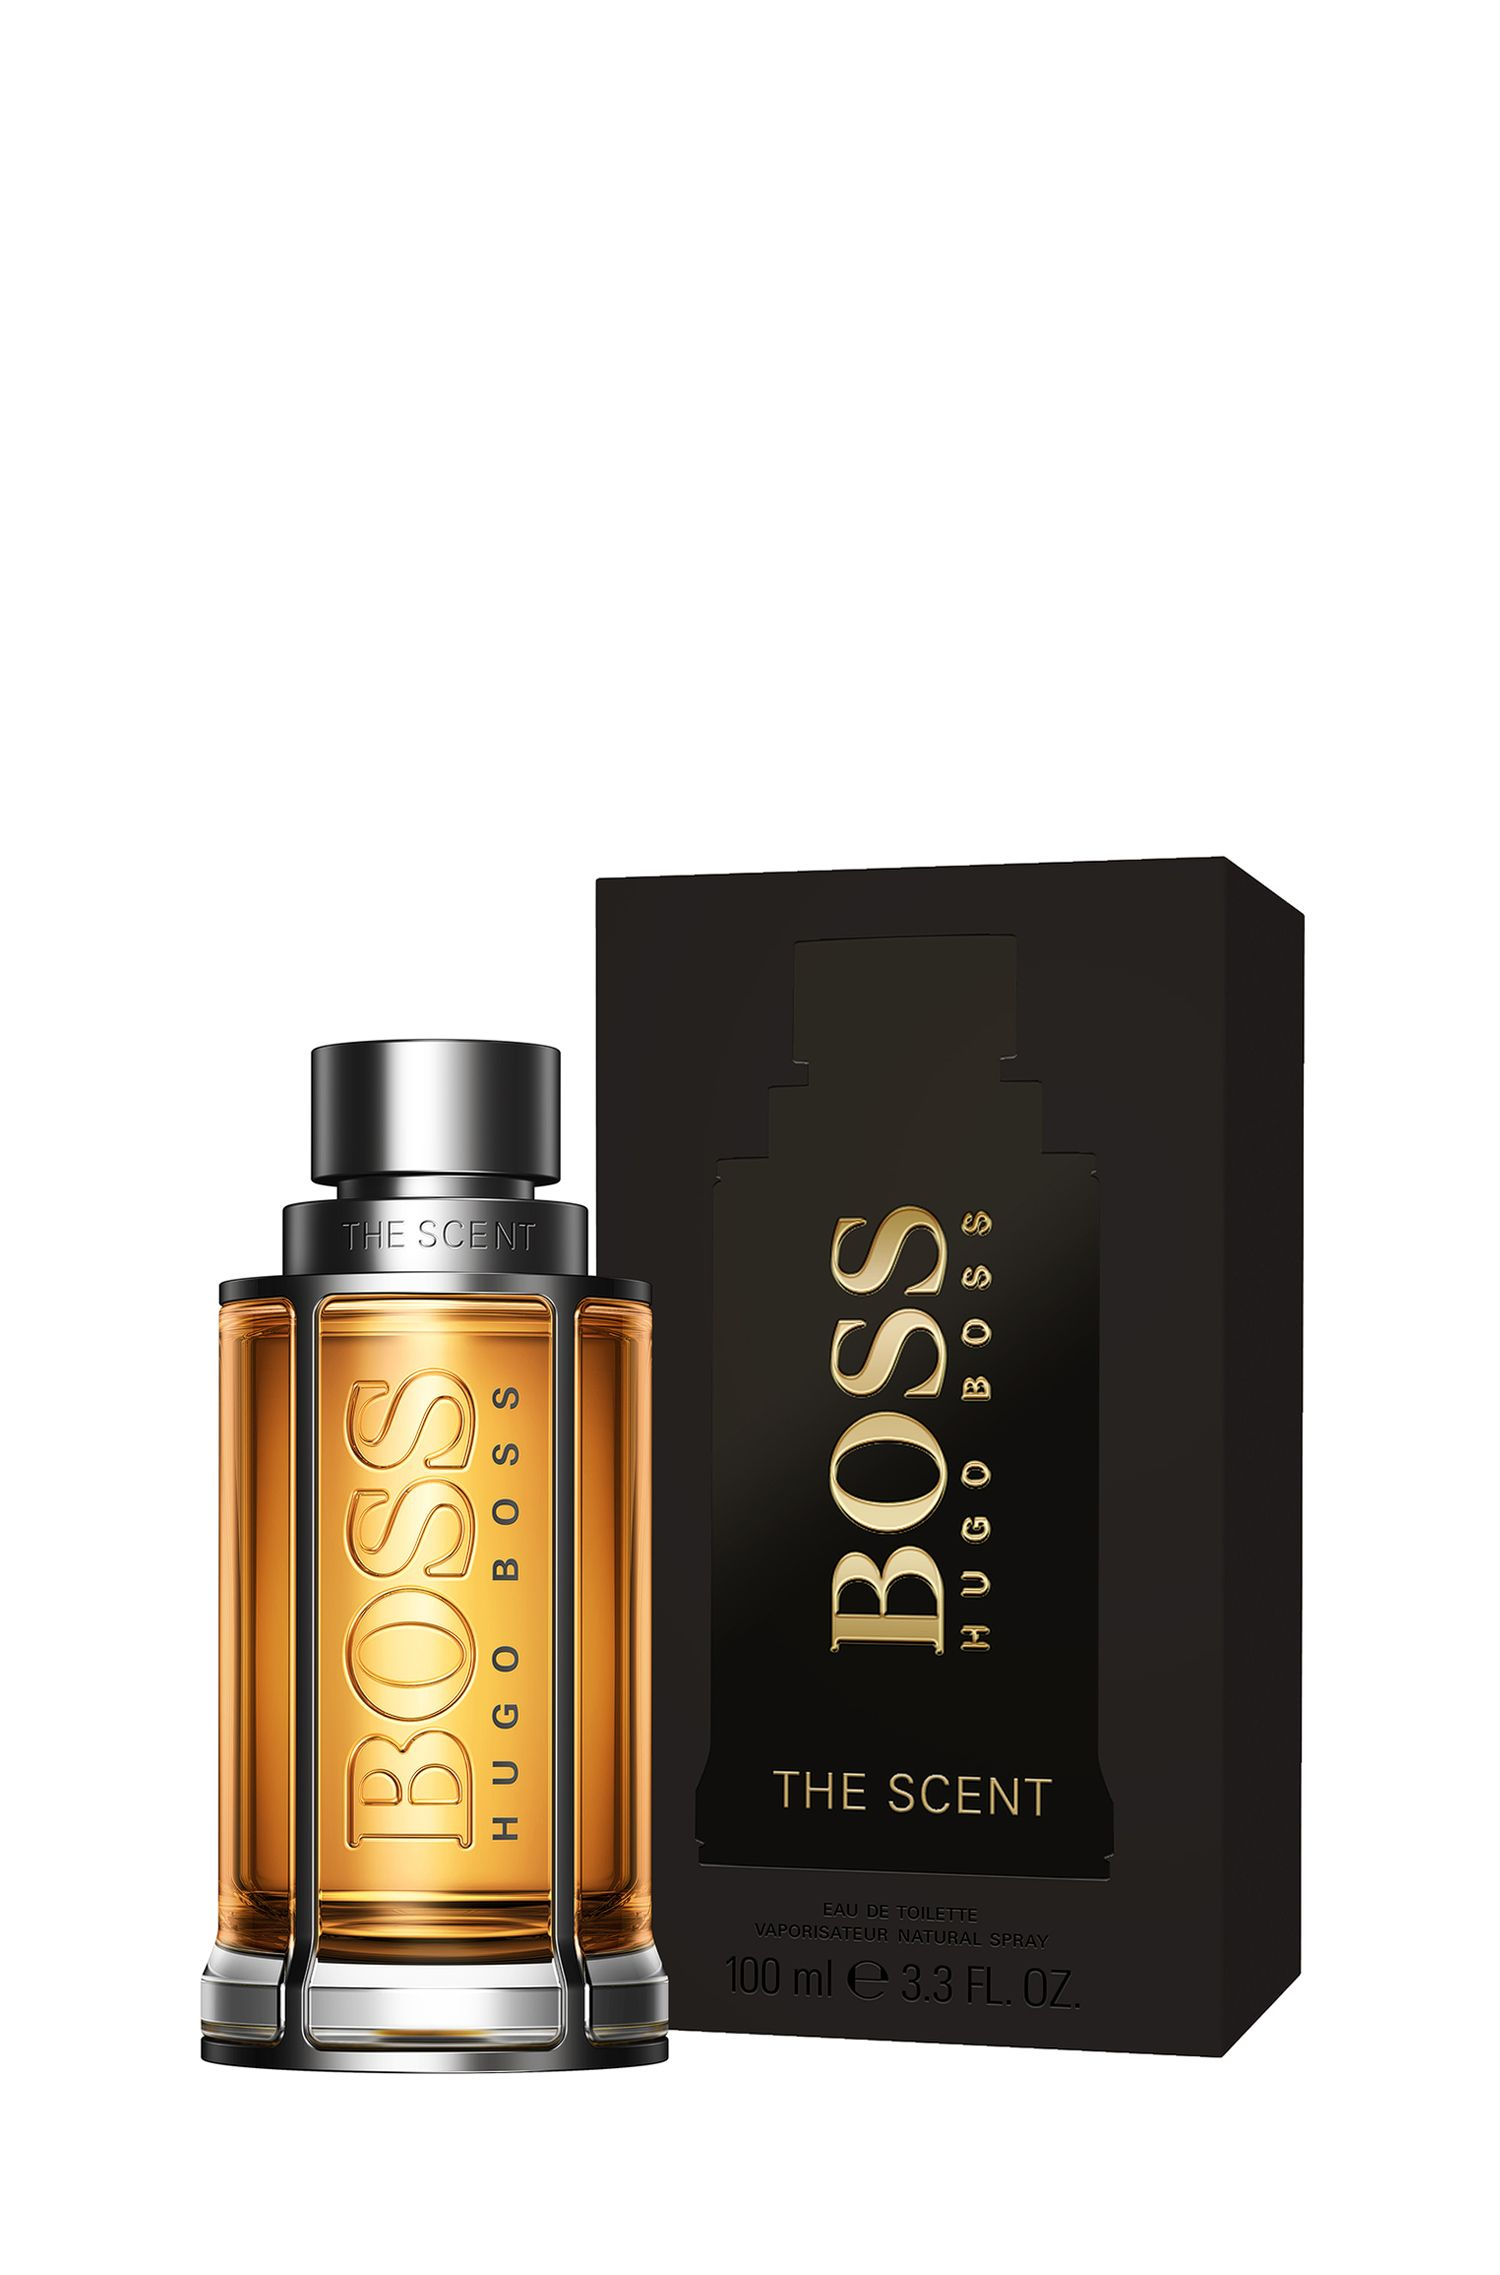 BOSS The Scent Eau de Toilette 100 ml